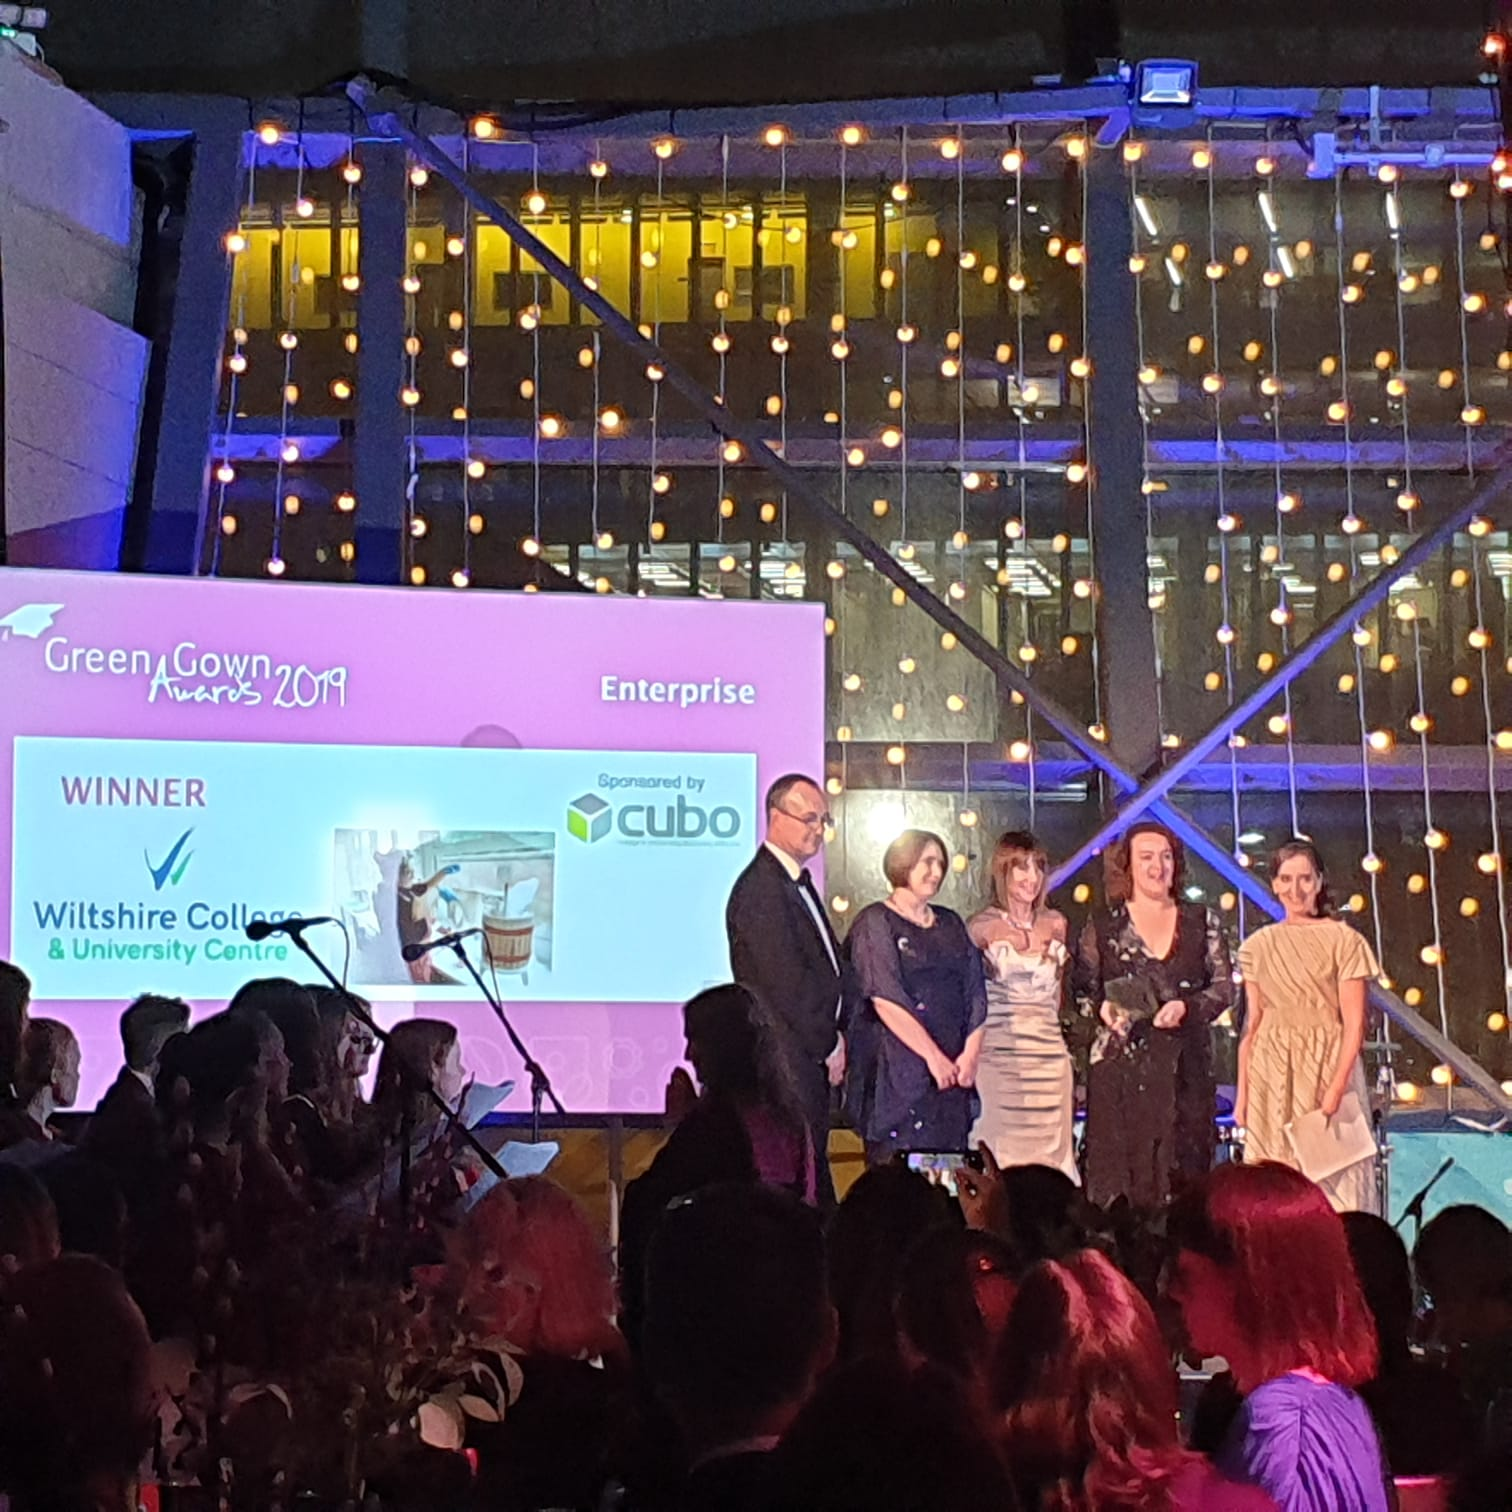 Photo (SOS-UK): Wiltshire College, Green Gown Enterprise Award Winners, 2019